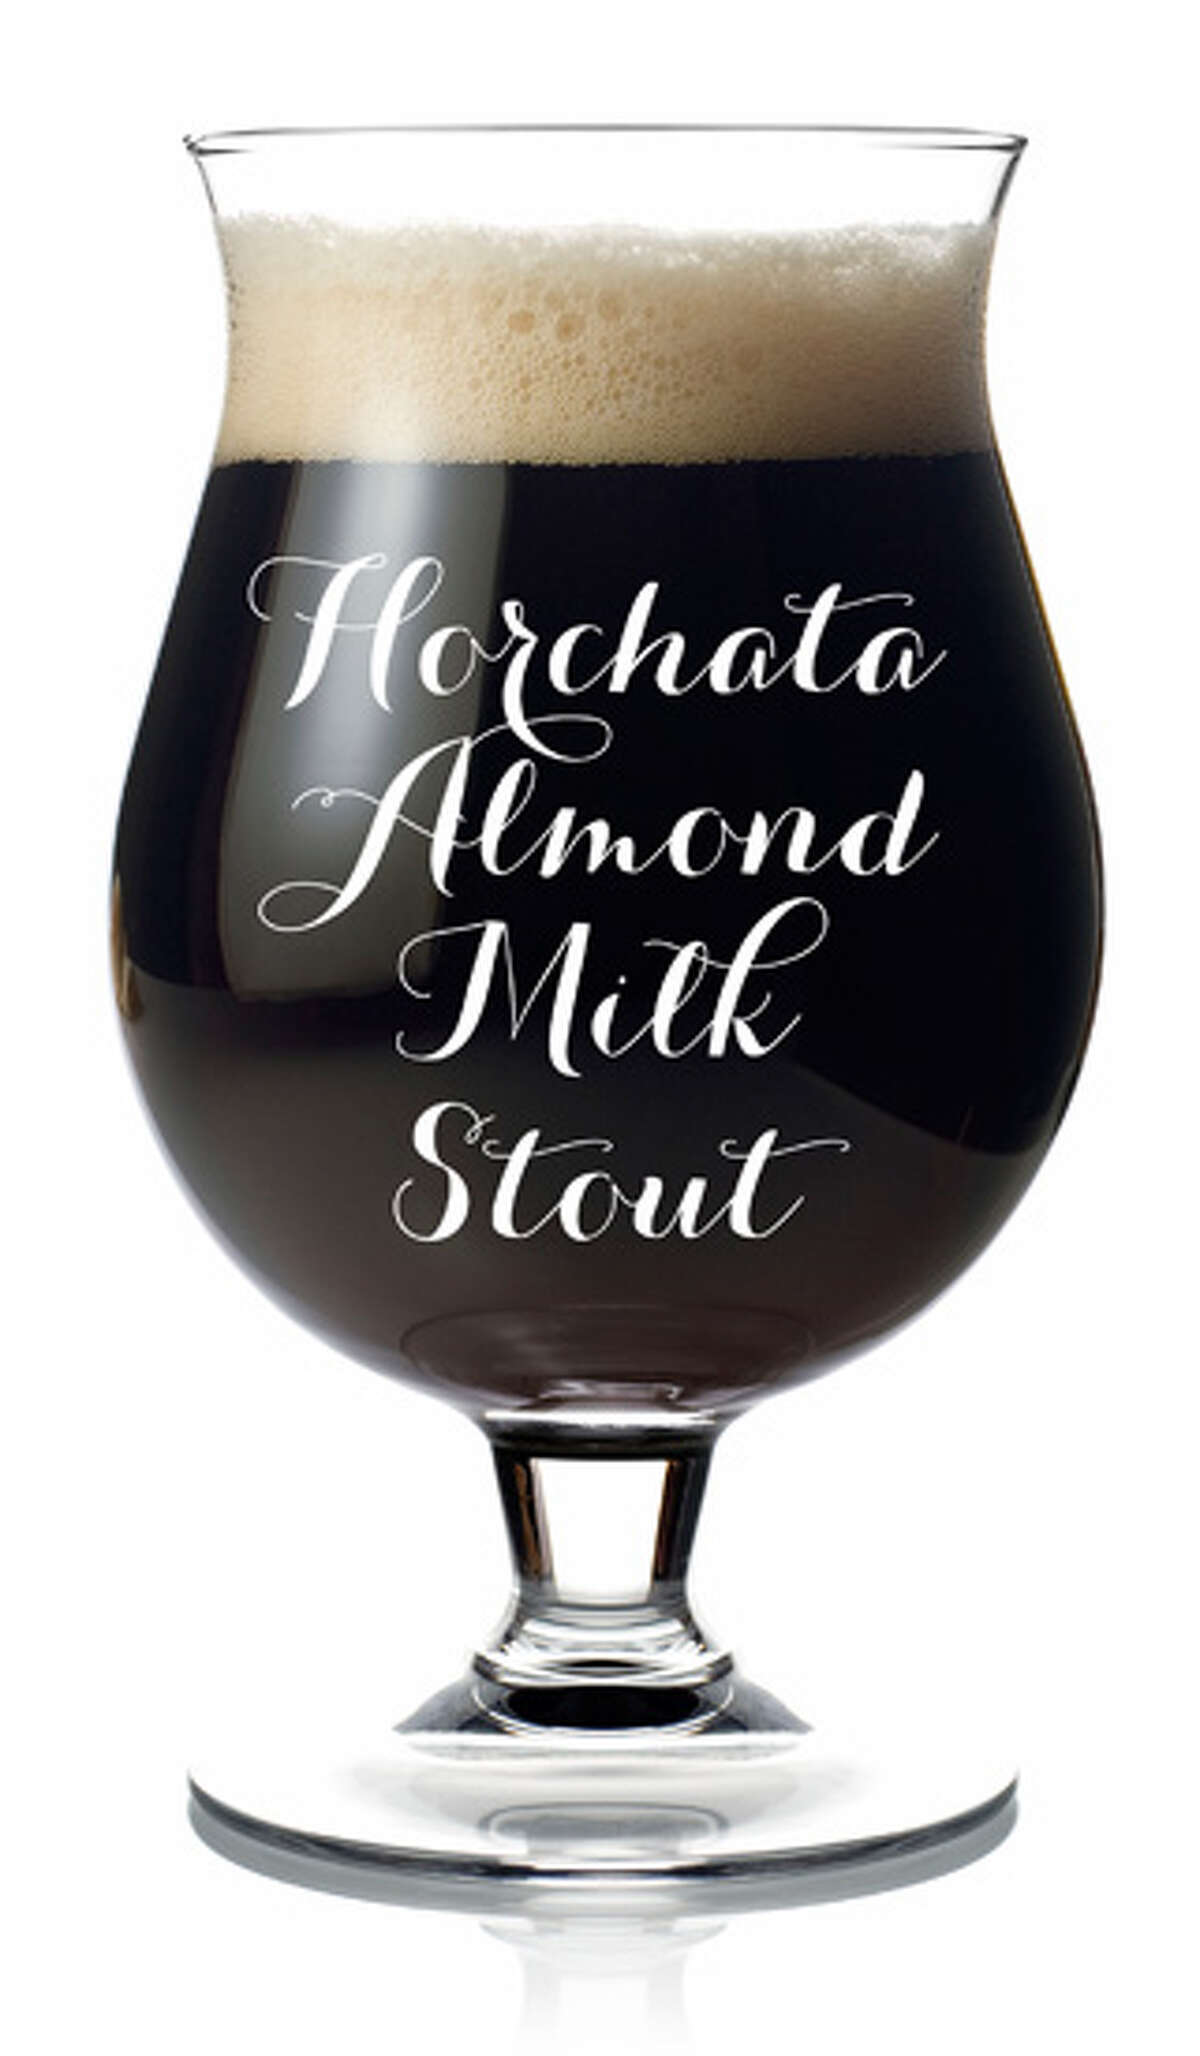 Beer: Almanac's Horchata Almond Milk StoutTastes just like: Creamy horchata milk with bitter cocoa nibsLocation: San FranciscoWhere to get it: Whole FoodsTell me more: This dark ale, inspired by classic Mexican flavors of San Francisco's culturally rich Mission District, uses bits of almonds from GL Alfieri farms and Vietnamese cinnamon for a slightly spiced flavor.